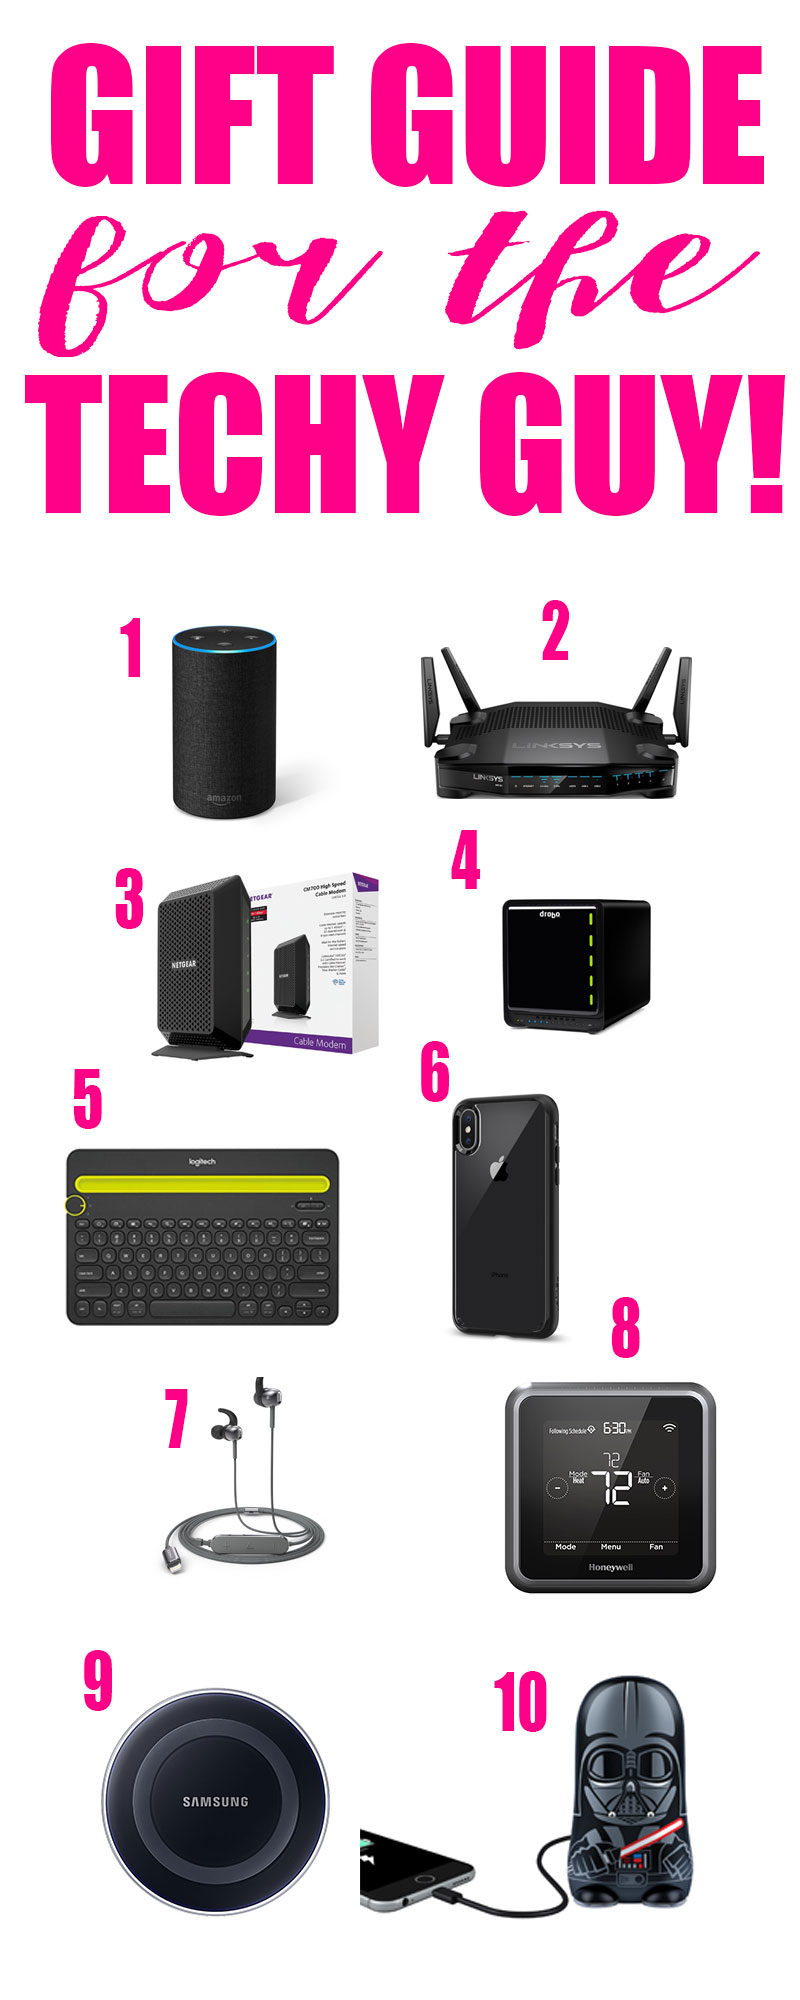 Gift Guide for the Techy Guy! Do you have a techy guy to buy for? Here are 10 ideas straight from the wishlist of my techy guy! #christmas #giftguide #techygifts #electronics #christmasgifts #christmaspresents